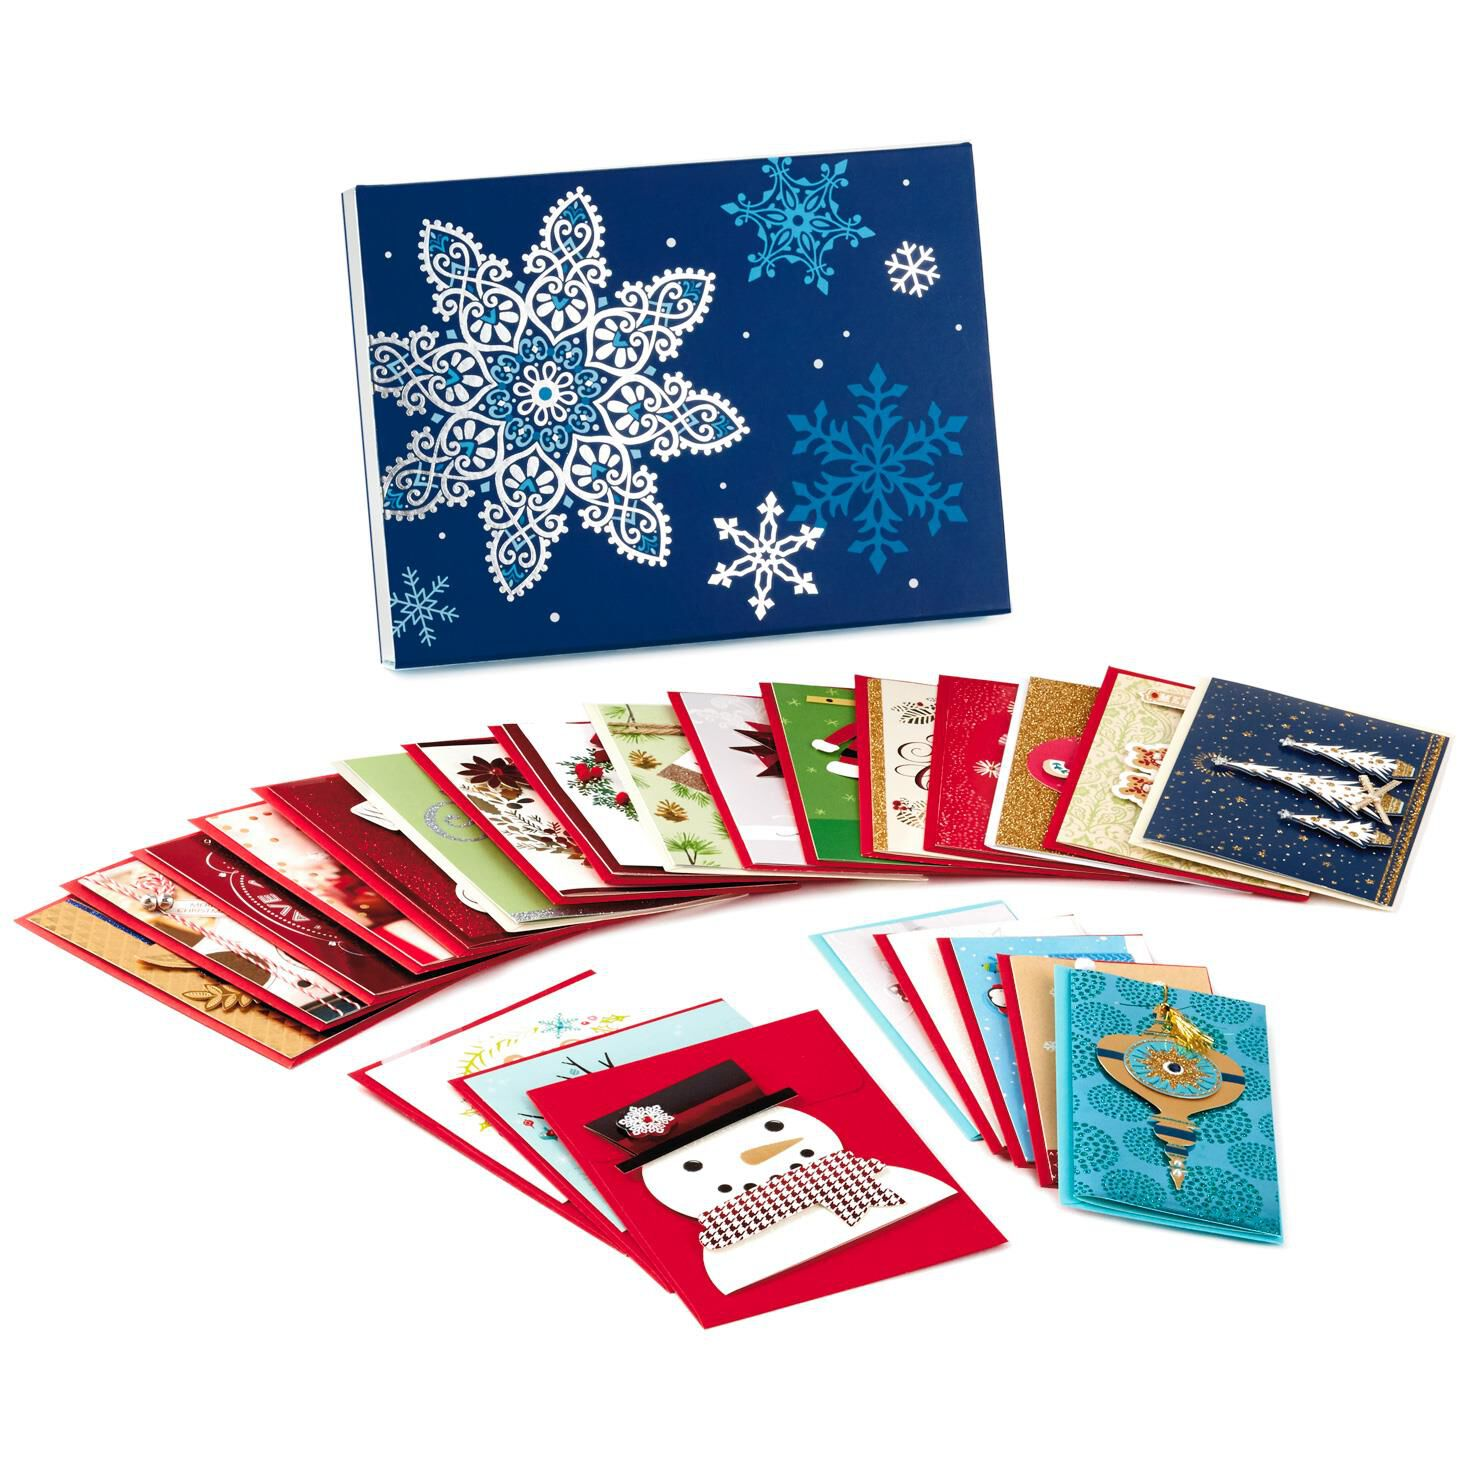 Assorted Handmade Christmas Cards, Box of 24 - Boxed Cards - Hallmark